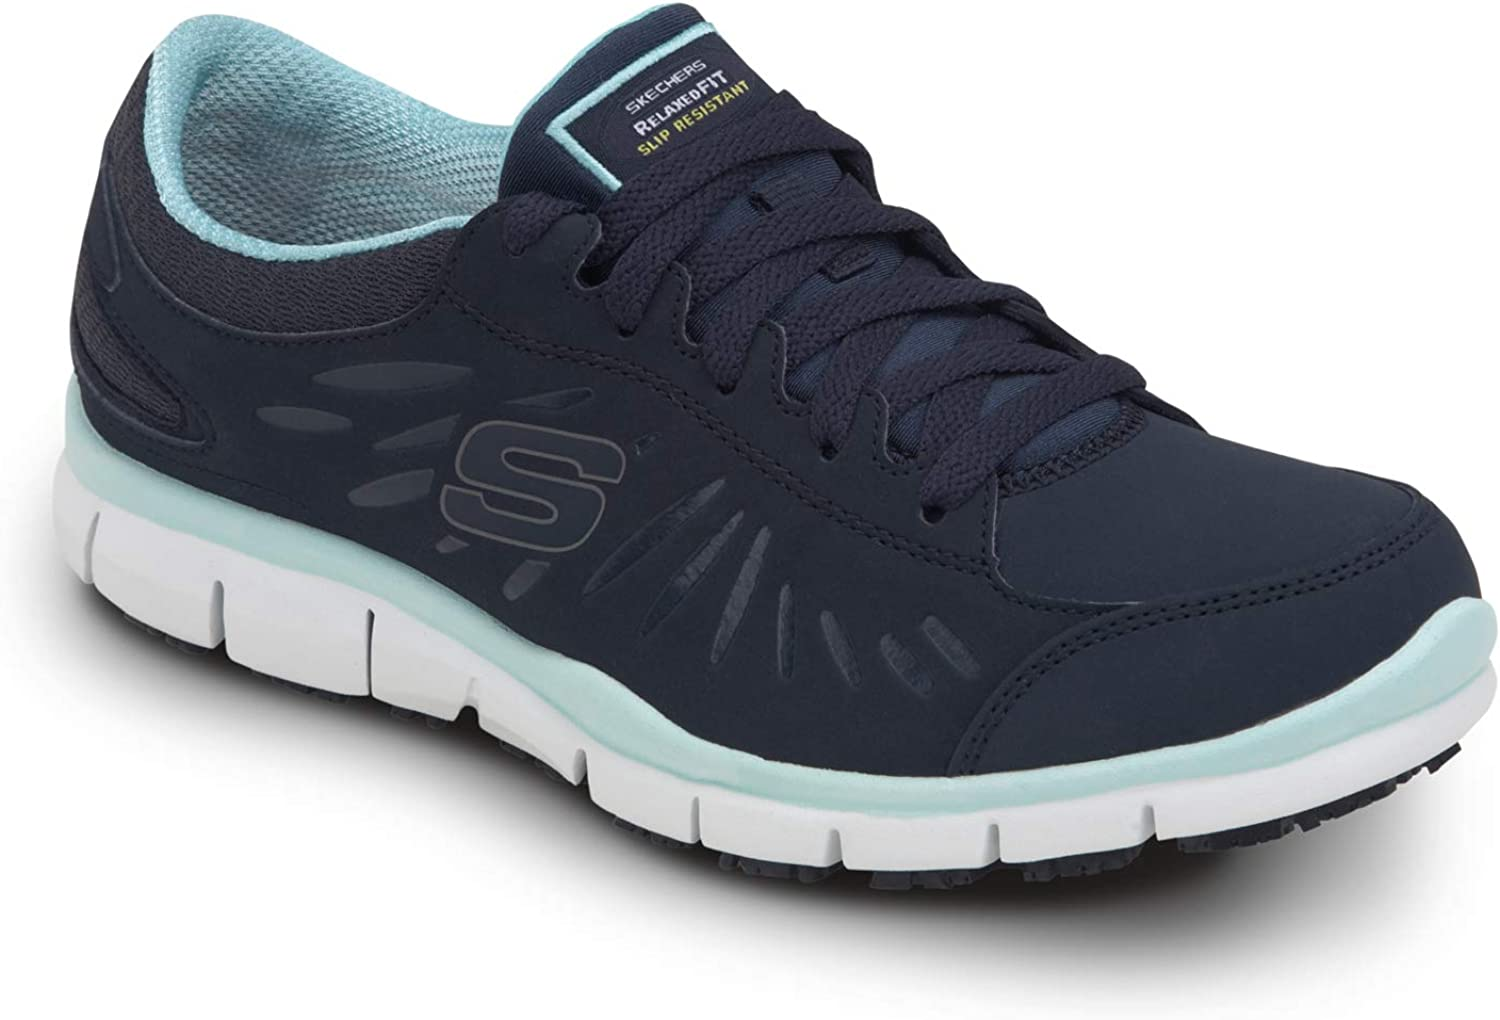 Skechers Work Stacey - Finally popular brand Women's Max 60% OFF Soft Ath Low Slip Toe Resistant